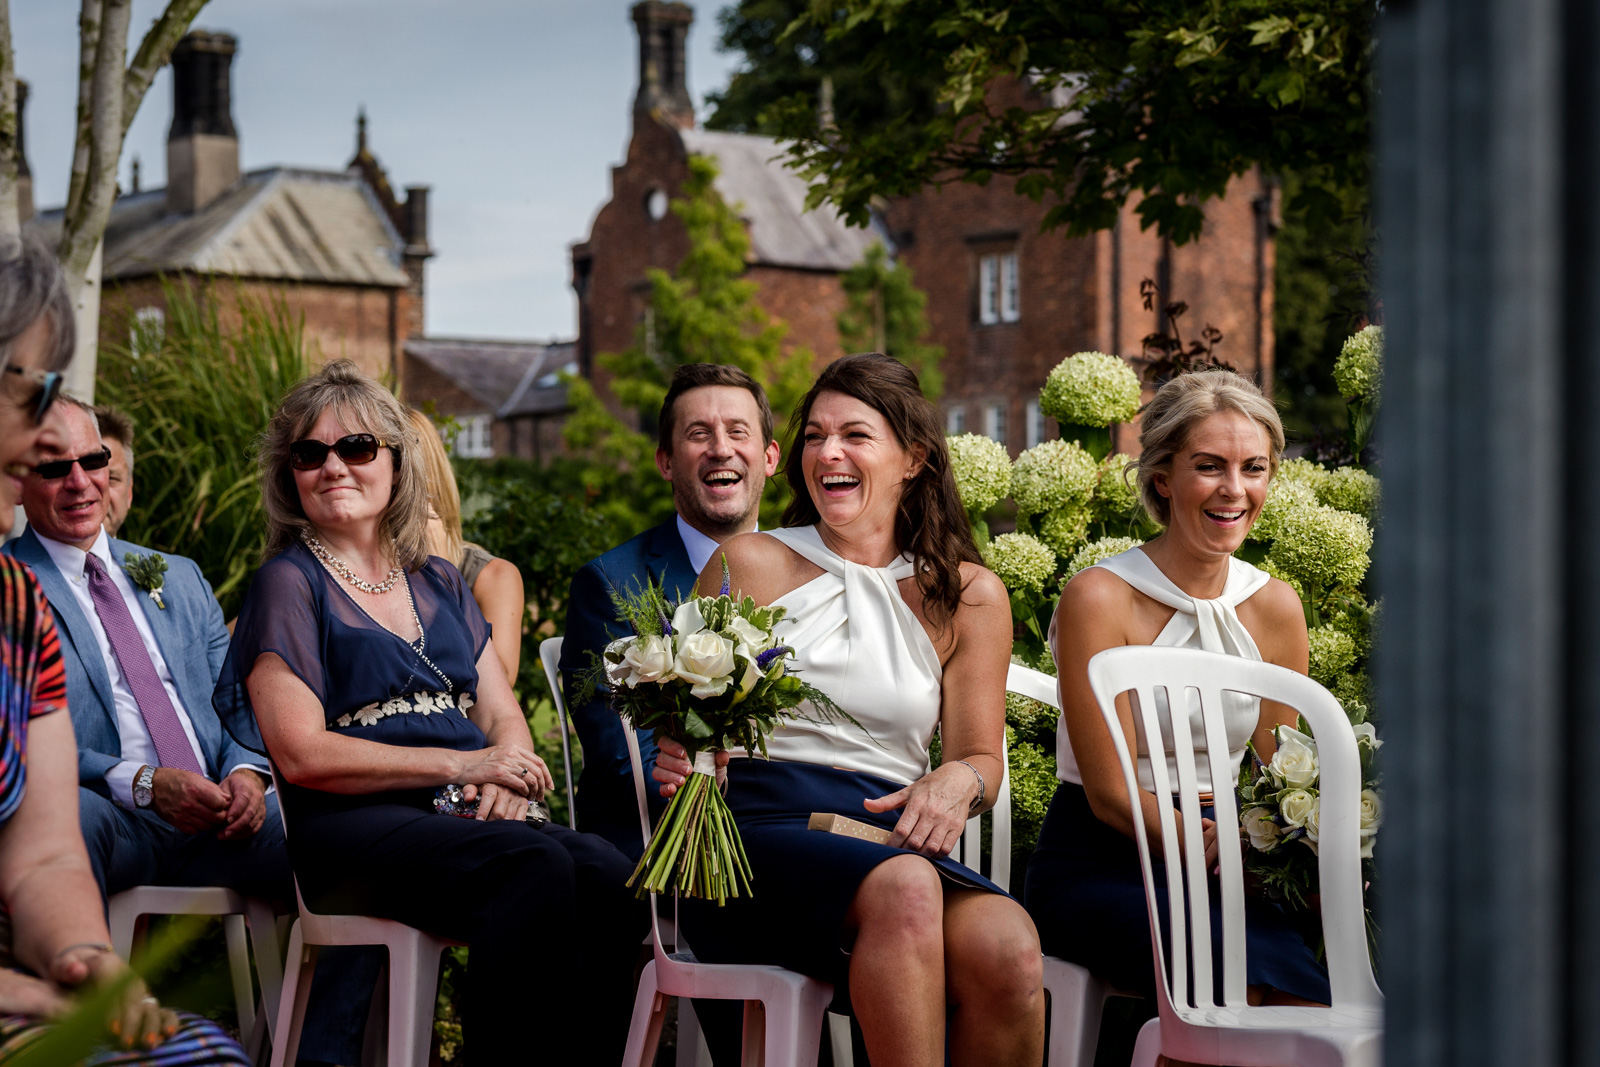 Capesthorne Hall Wedding ceremony in Cheshire